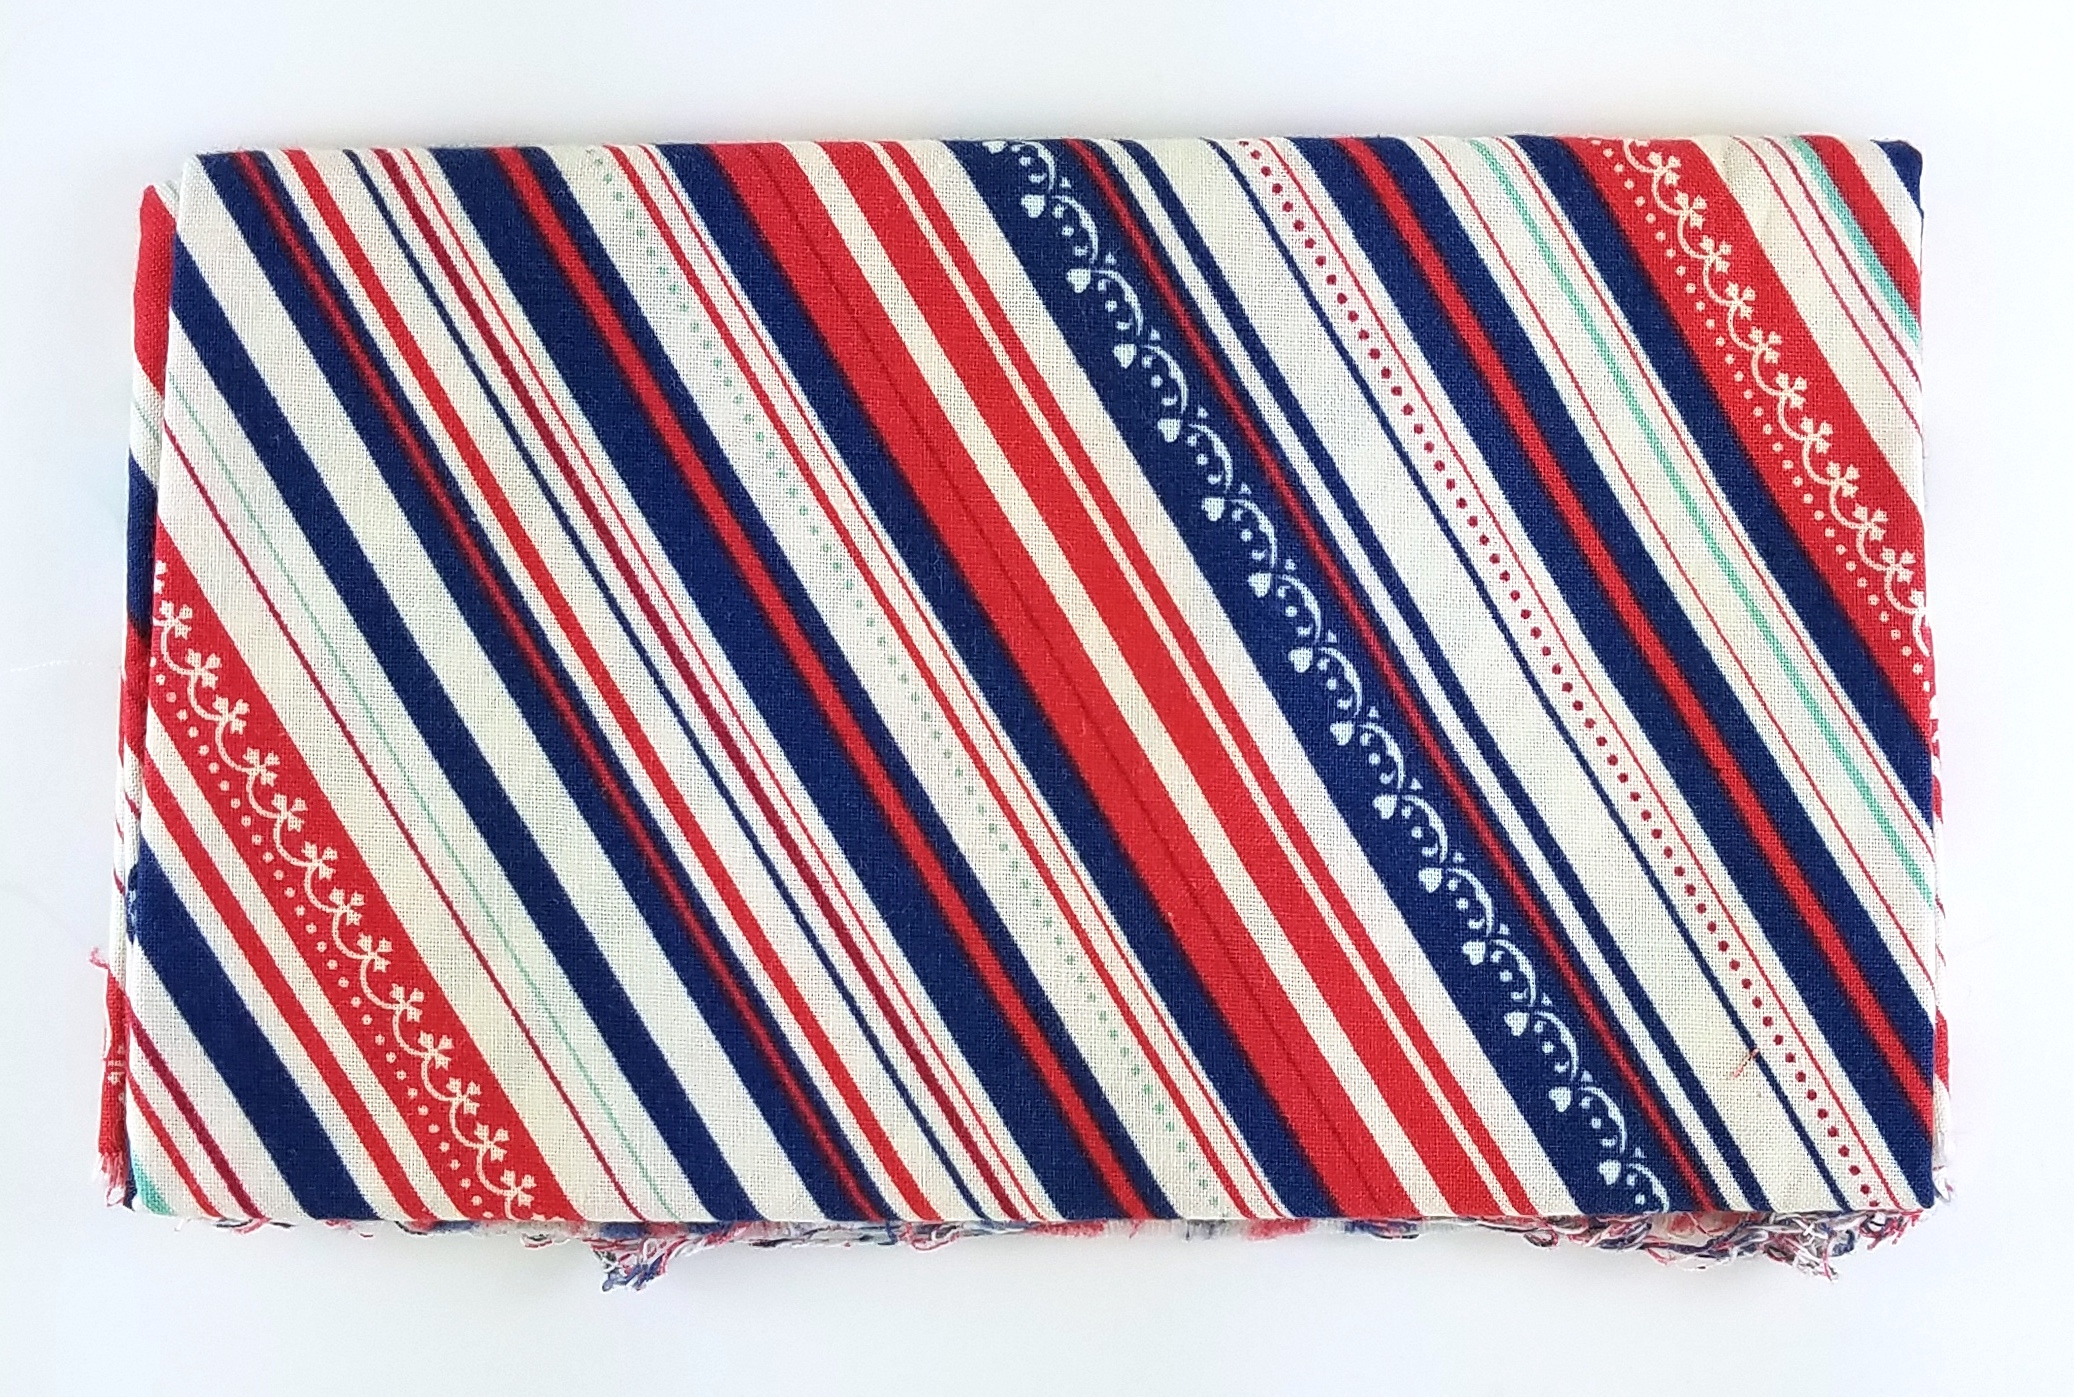 1:2 yrd minus square, washed Liberty stripes